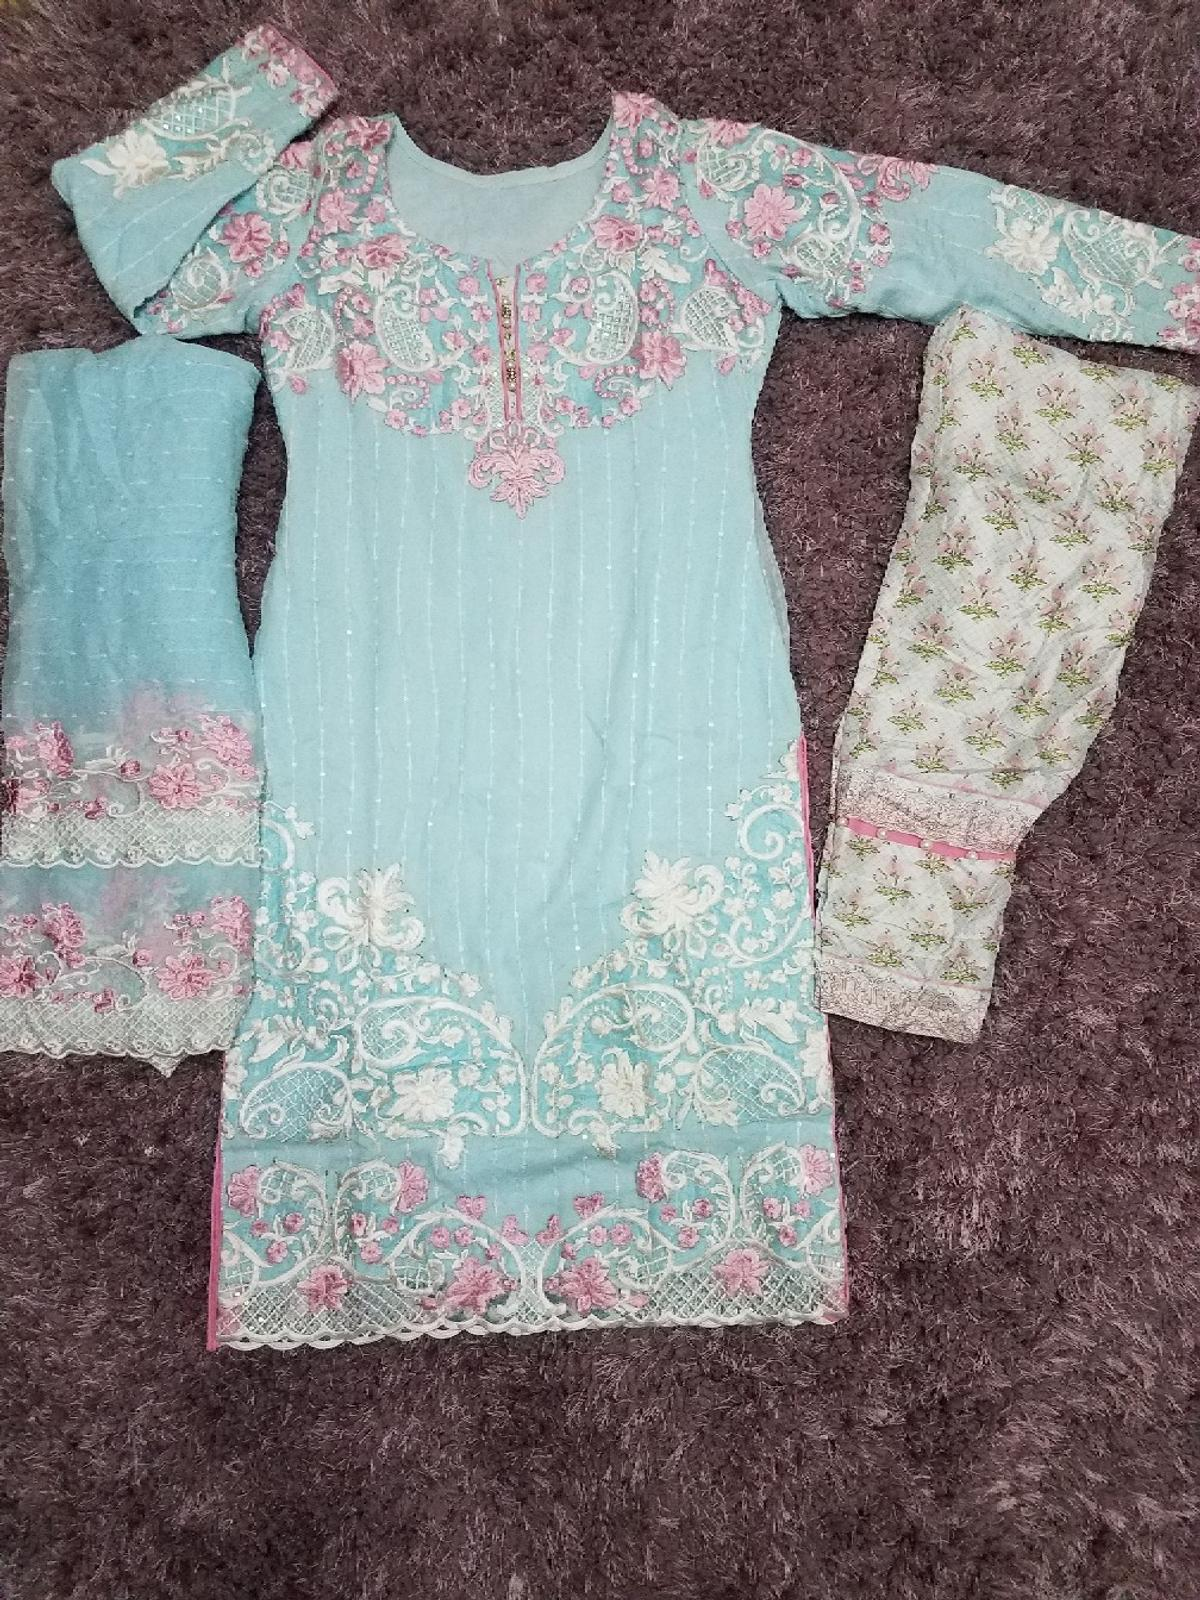 Size medium worn only once chiffon heavy embroidered suit paid £140 for it